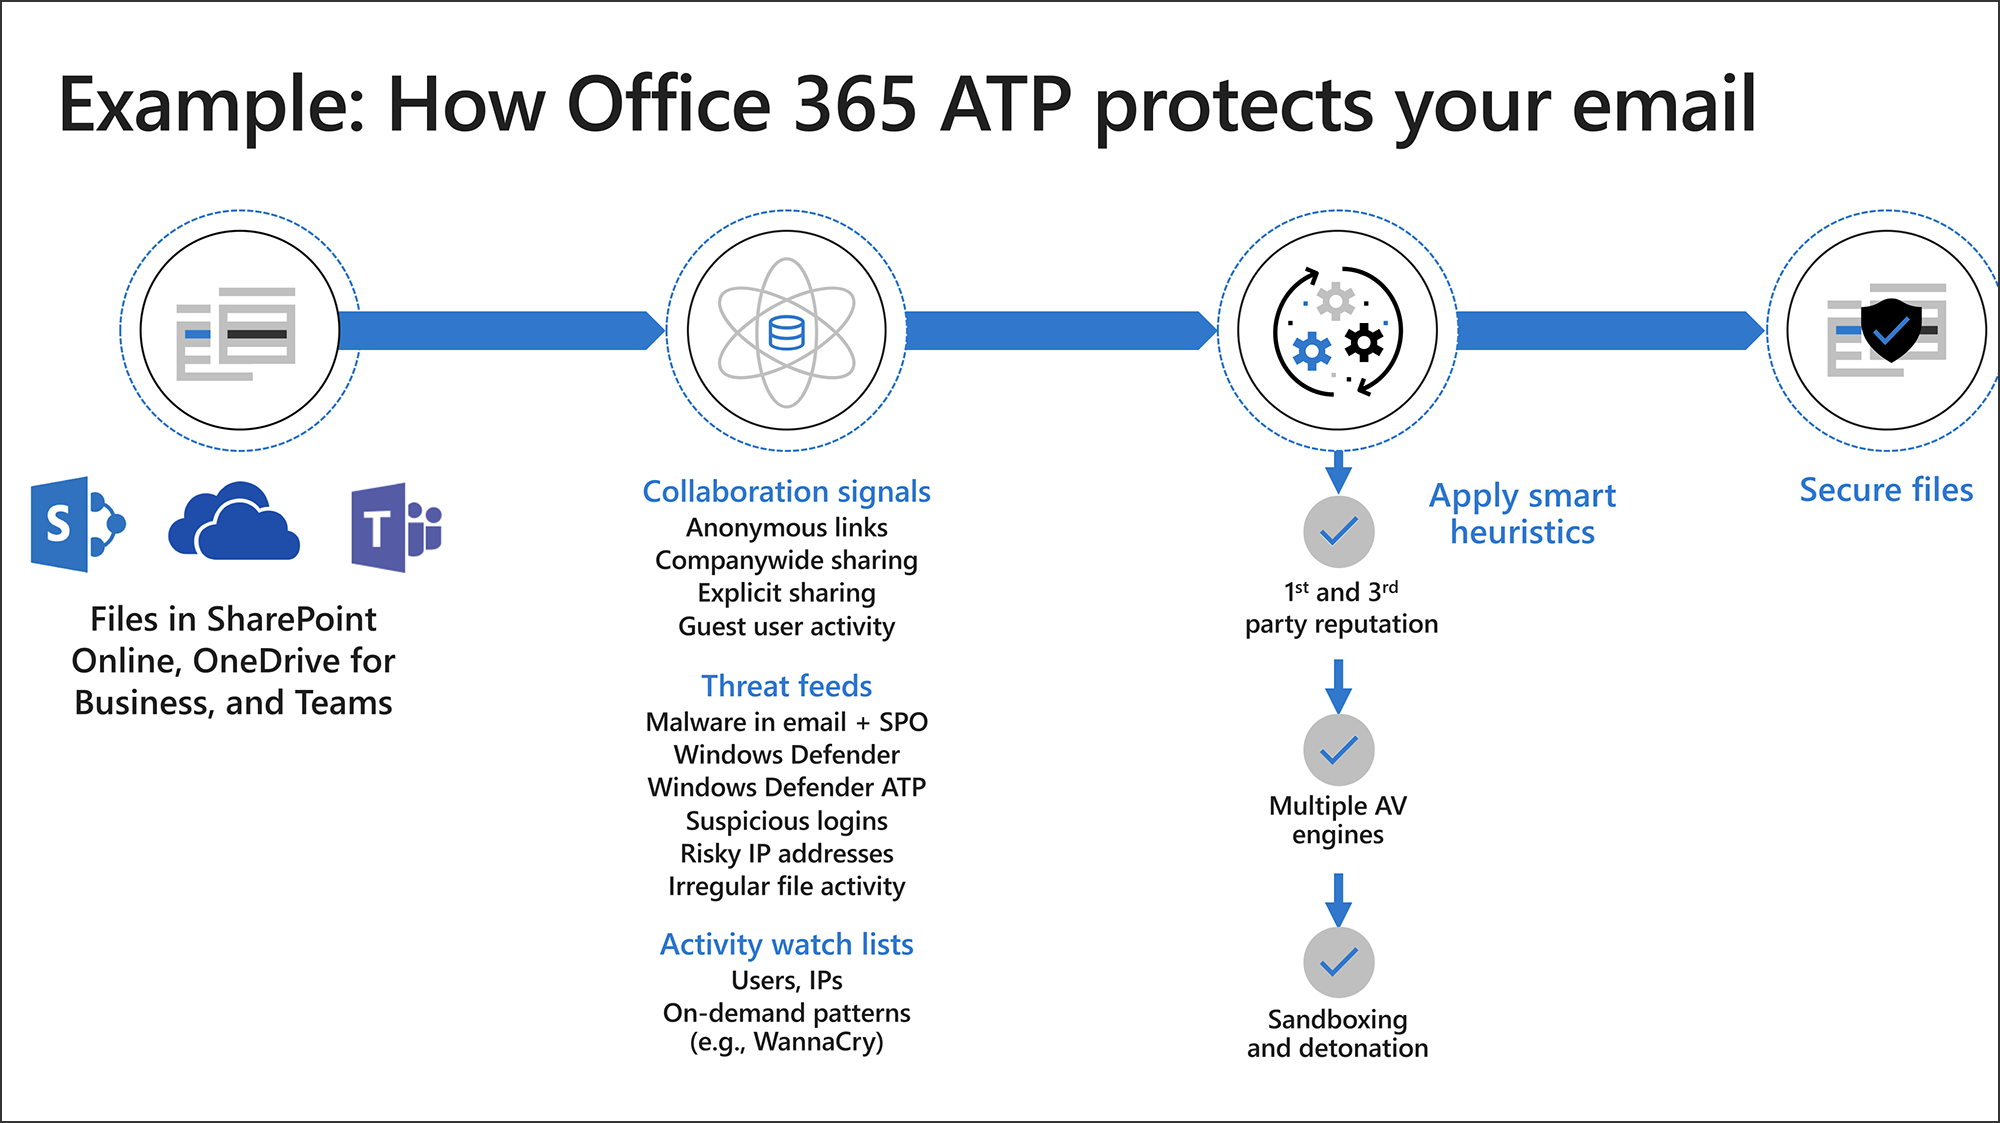 O365 ATP Protects Email - Digital Transformation of the Corporate Legal  Department